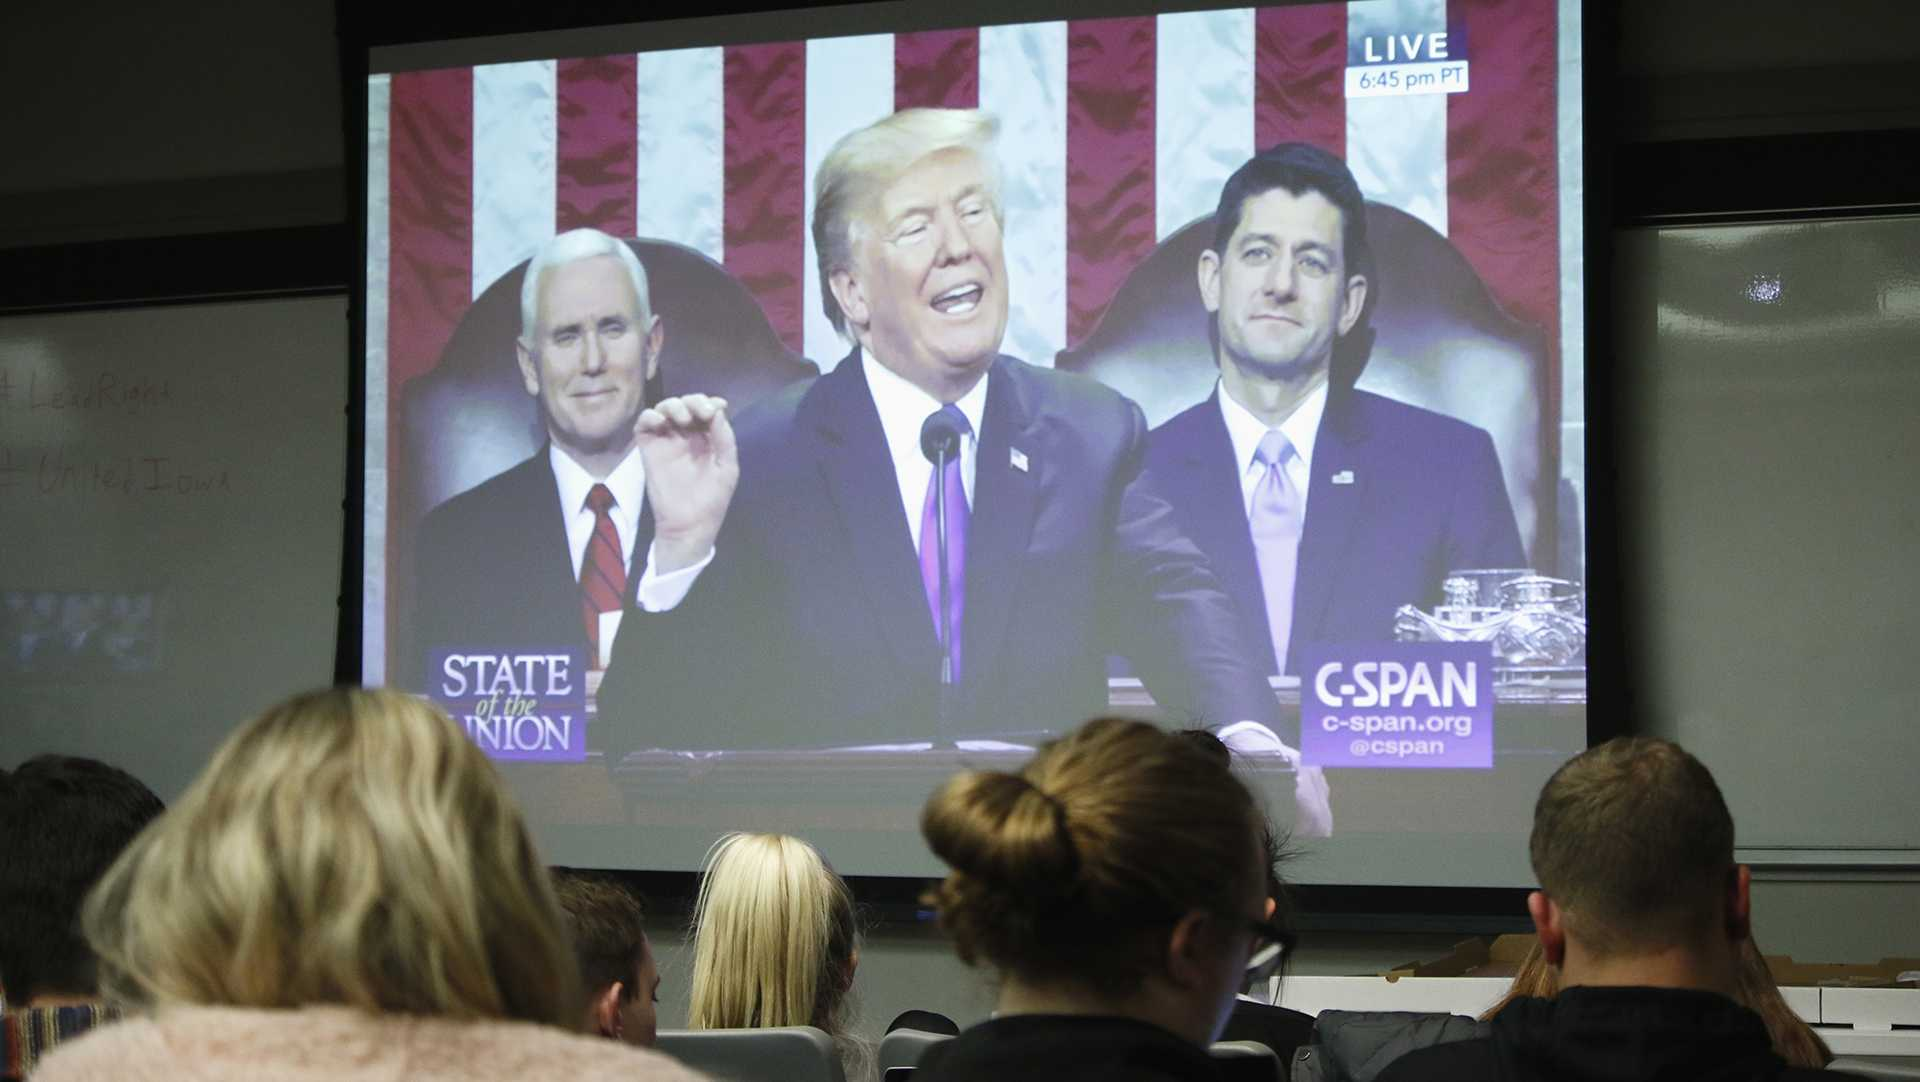 Students watch the State of the Union Address on Tuesday, Jan. 30, 2018 at the Pappajohn Business Building. The president discussed events that occurred throughout his first year of presidency. (Katina Zentz/ The Daily Iowan)